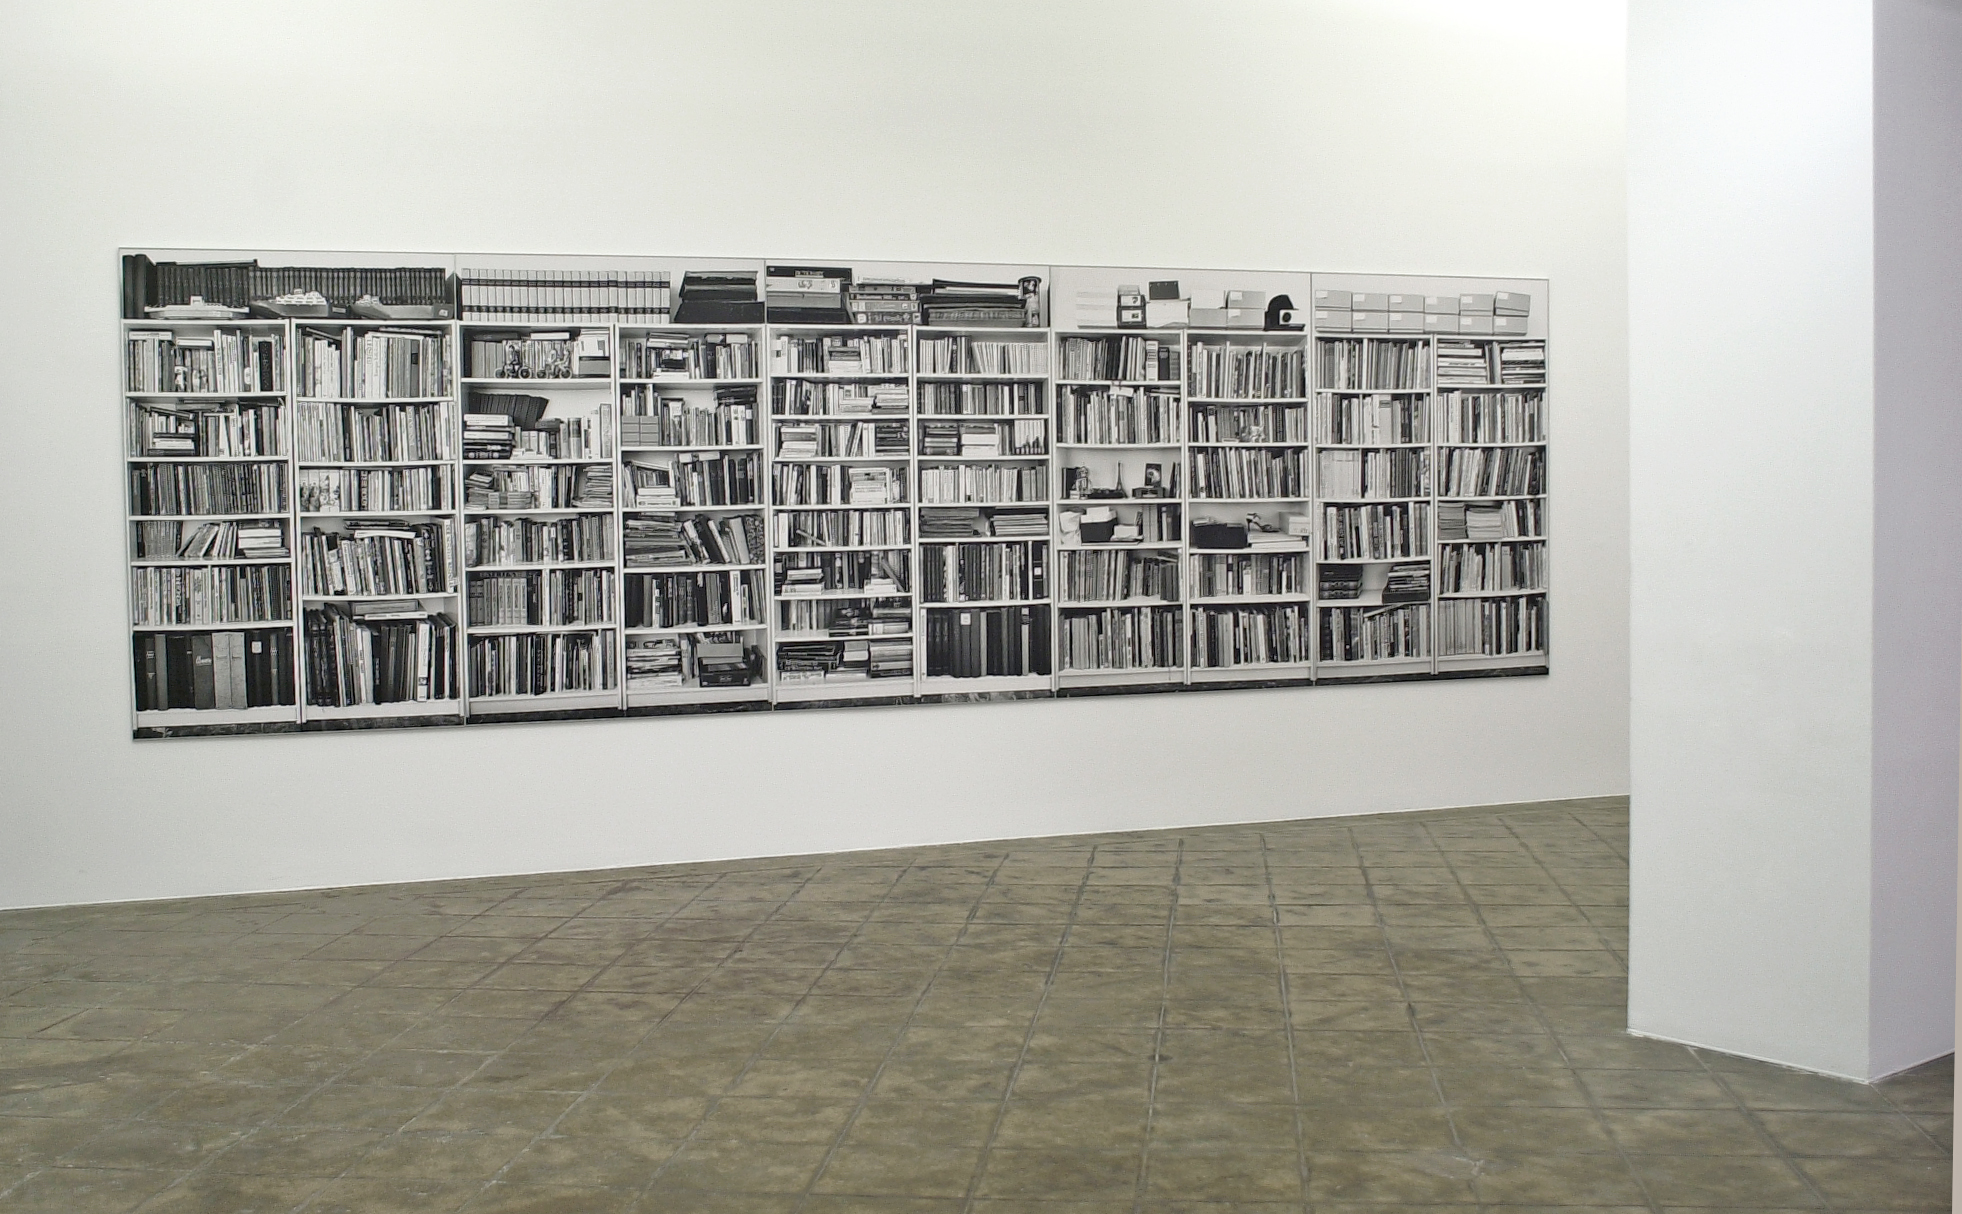 Bookshelves, 1999 |  | ProjecteSD